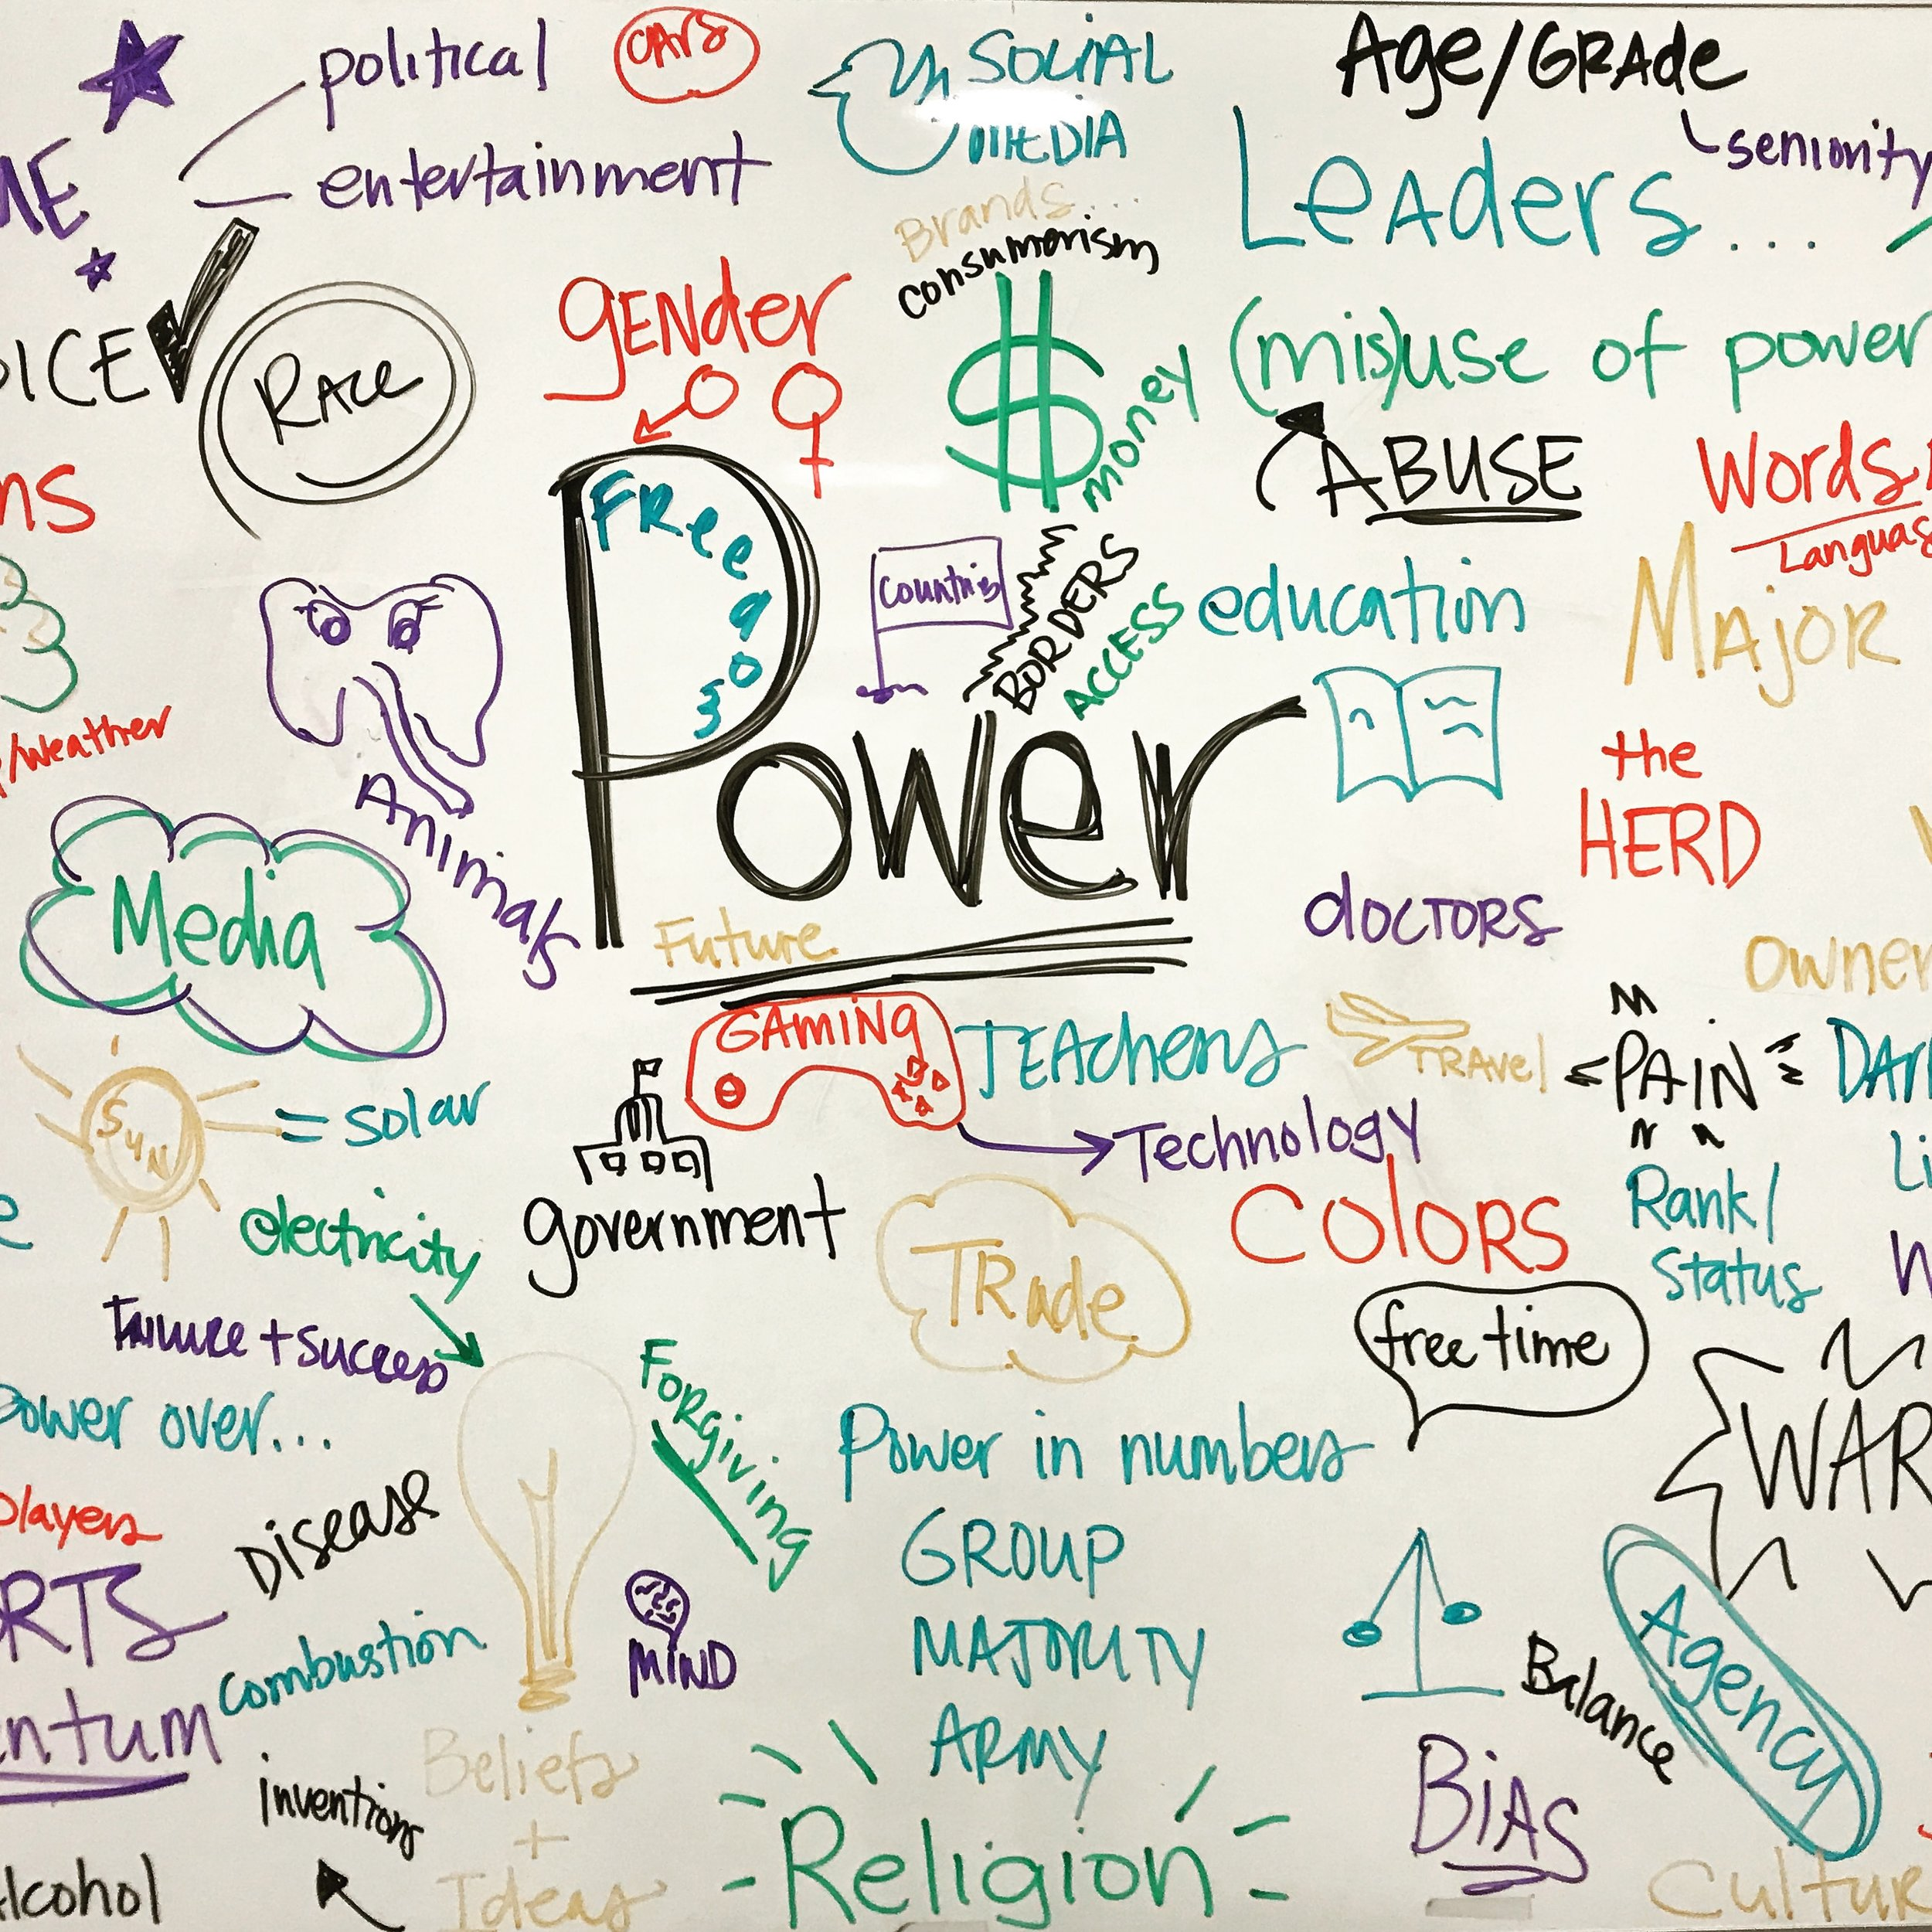 tinker/discover - What is power? In our initial brainstorm session, students came up with so many ideas they barely fit on our whiteboard.